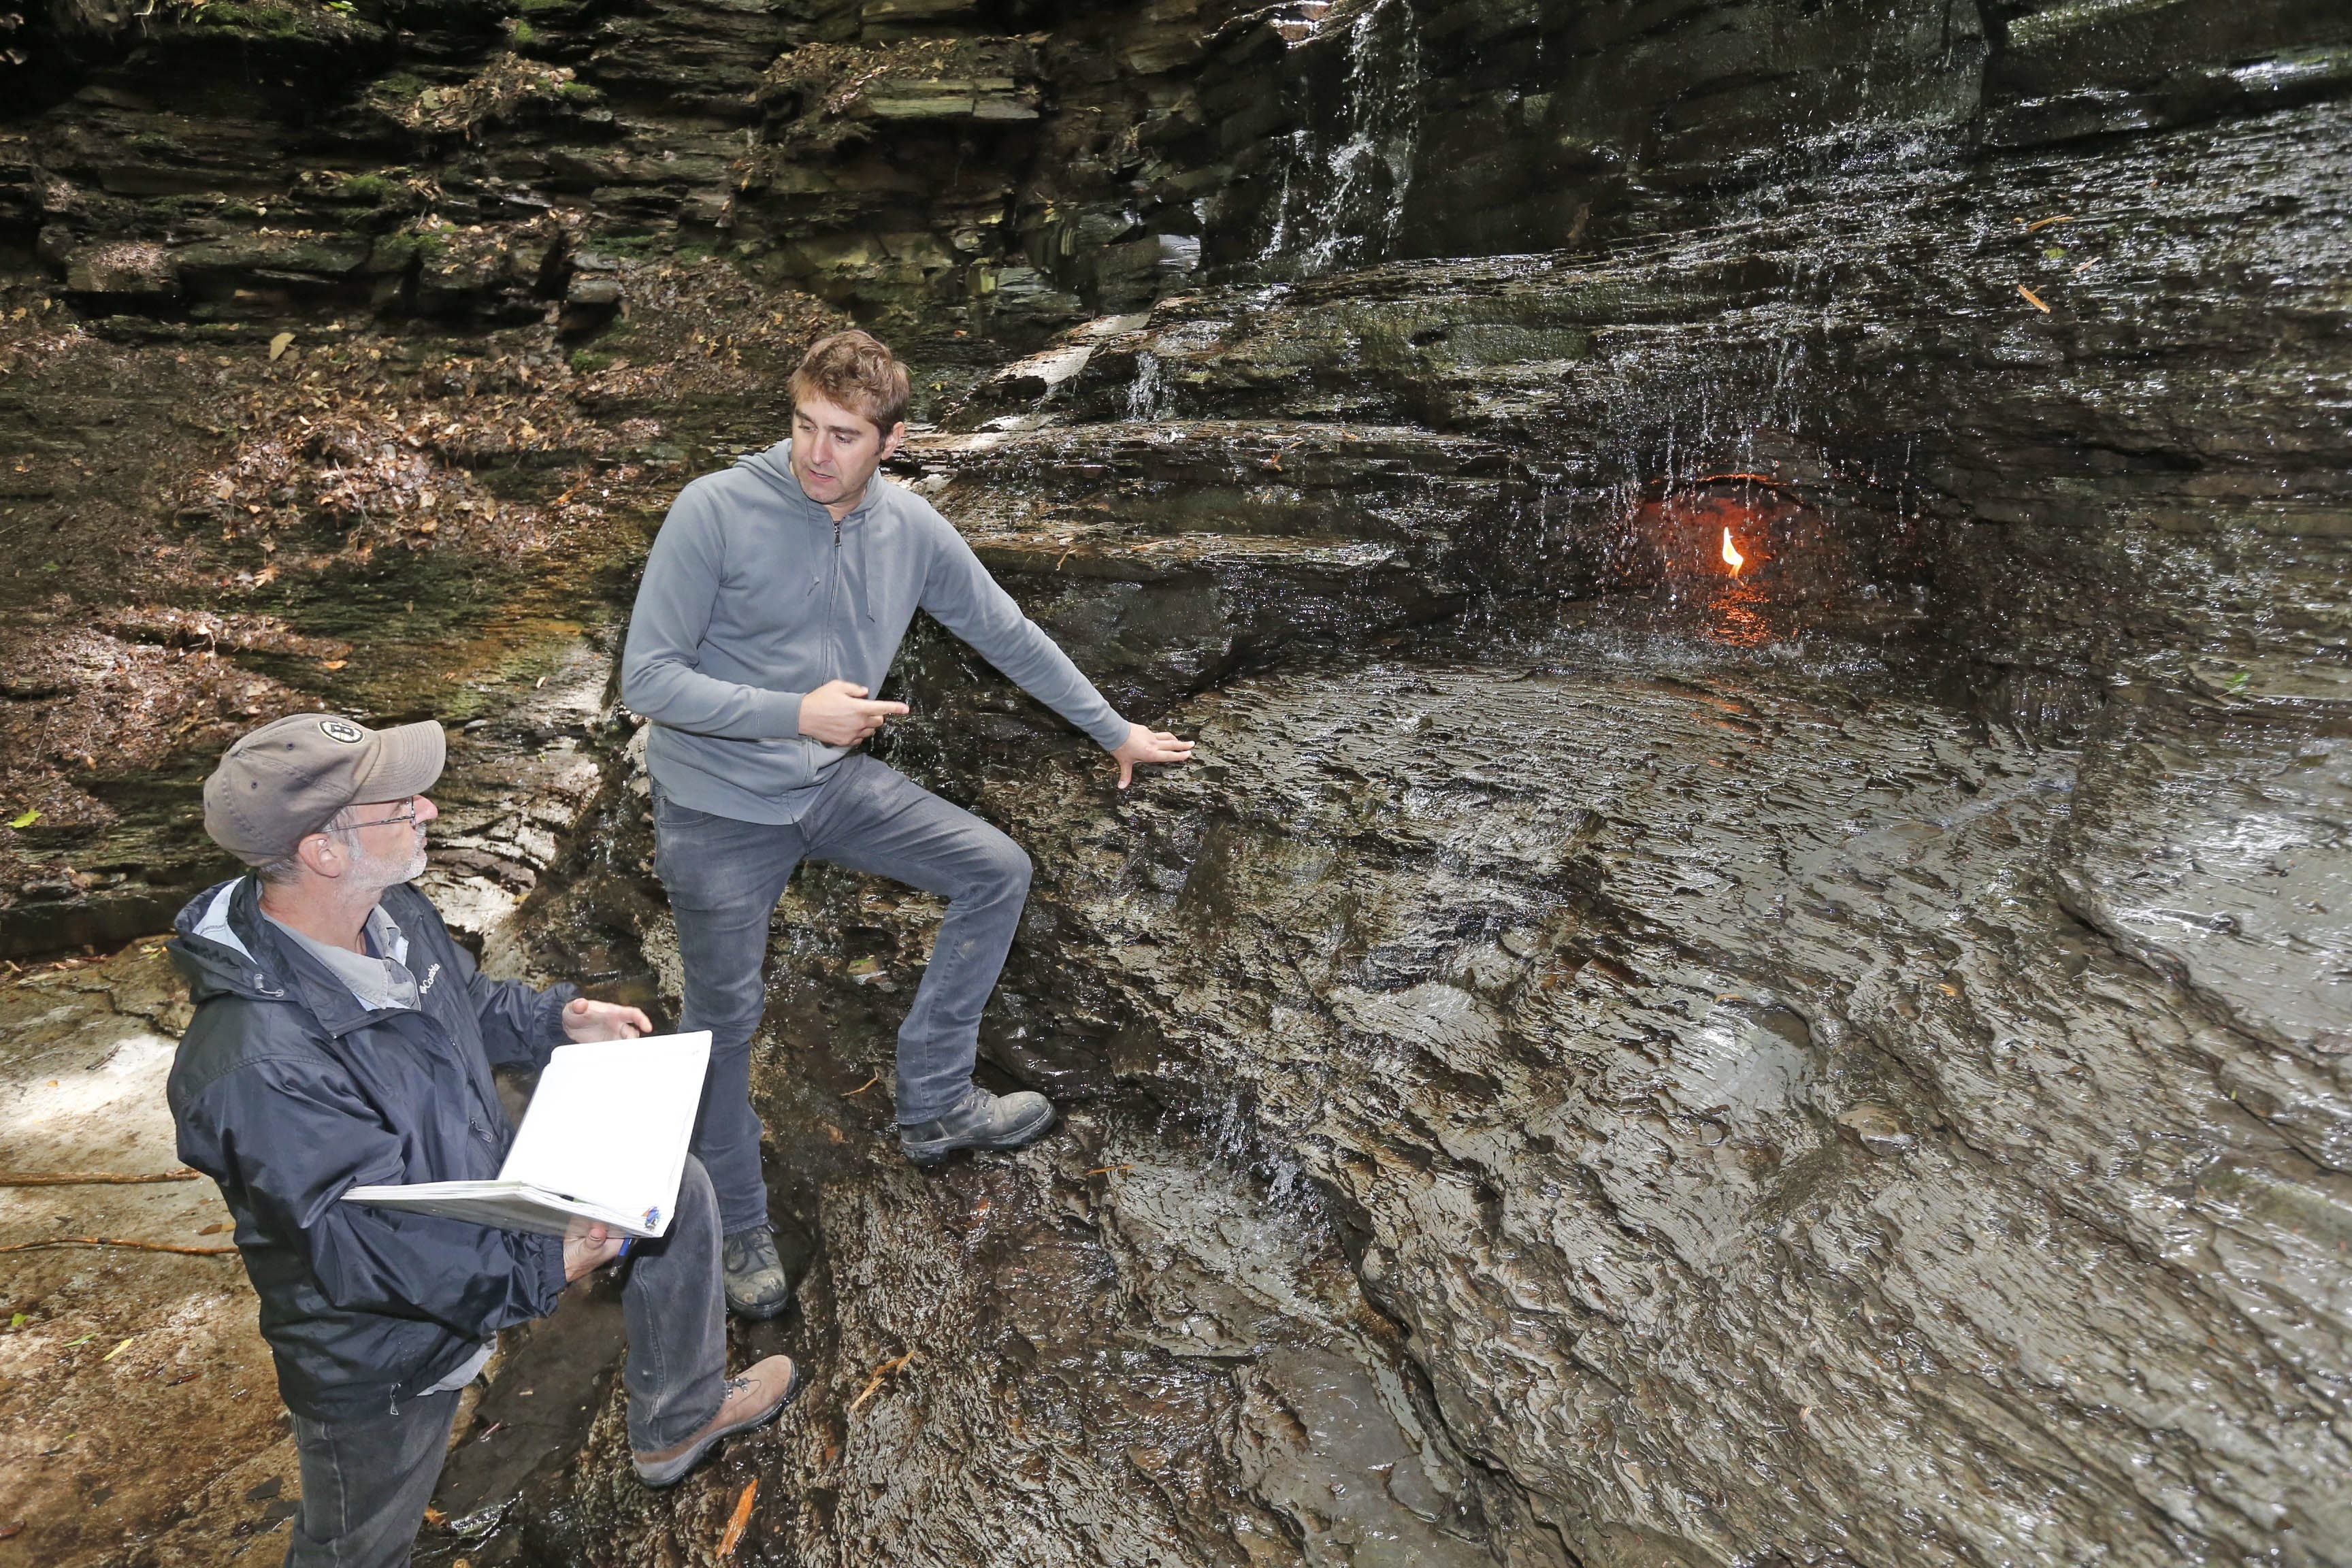 """Director Glenn Kirschbaum, left, and host Tory Belleci of """"MythBusters,"""" discuss filming near the Eternal Flame at Chestnut Ridge on Friday. A crew was in town to produce a show for Travel Channel that should air in the first quarter of 2015."""